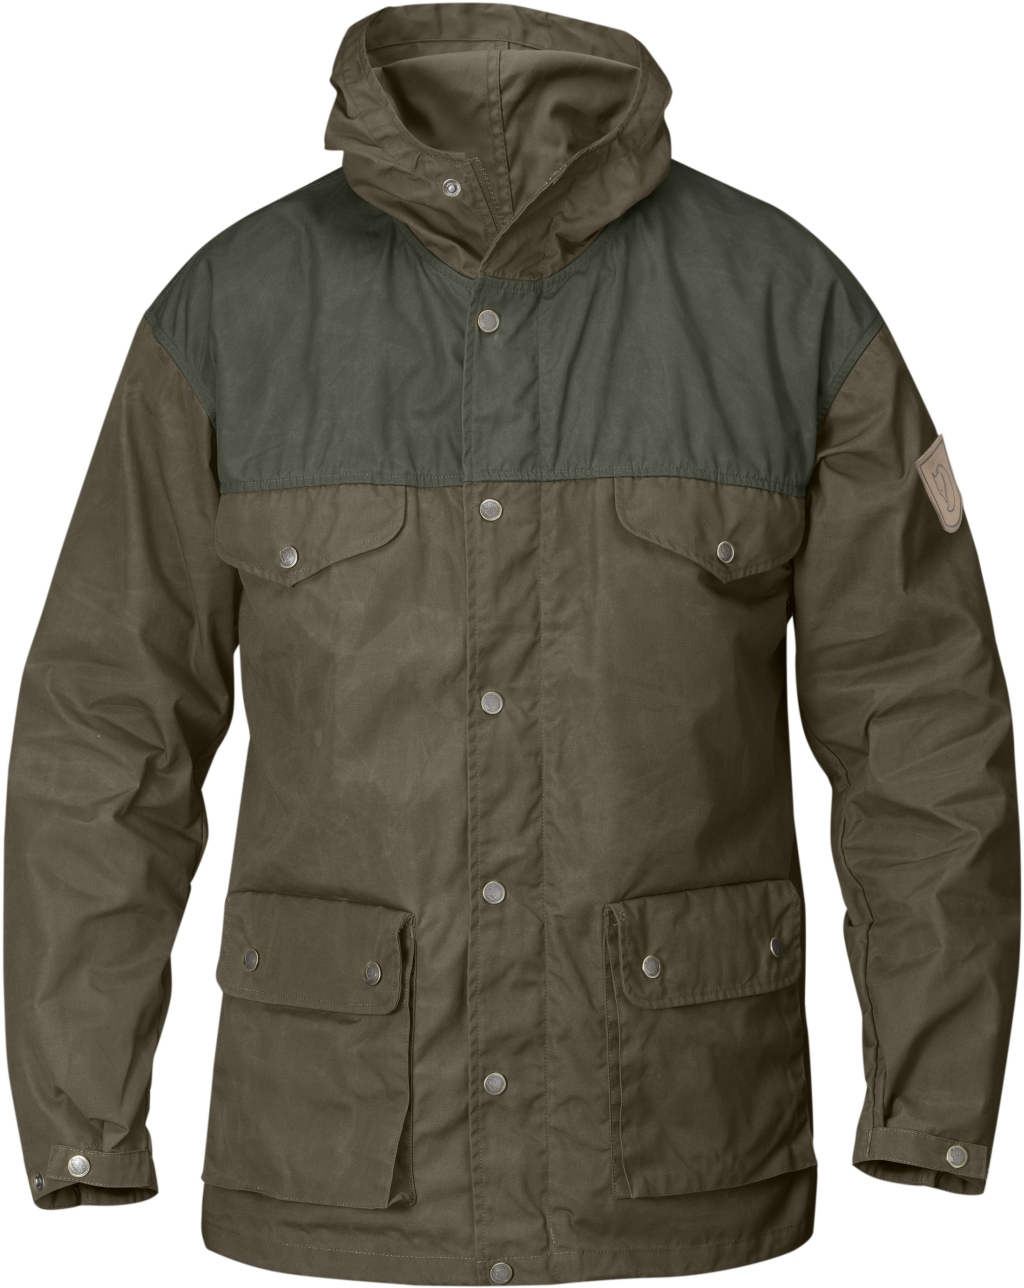 FjallRaven Greenland Jacket Dark Olive-30